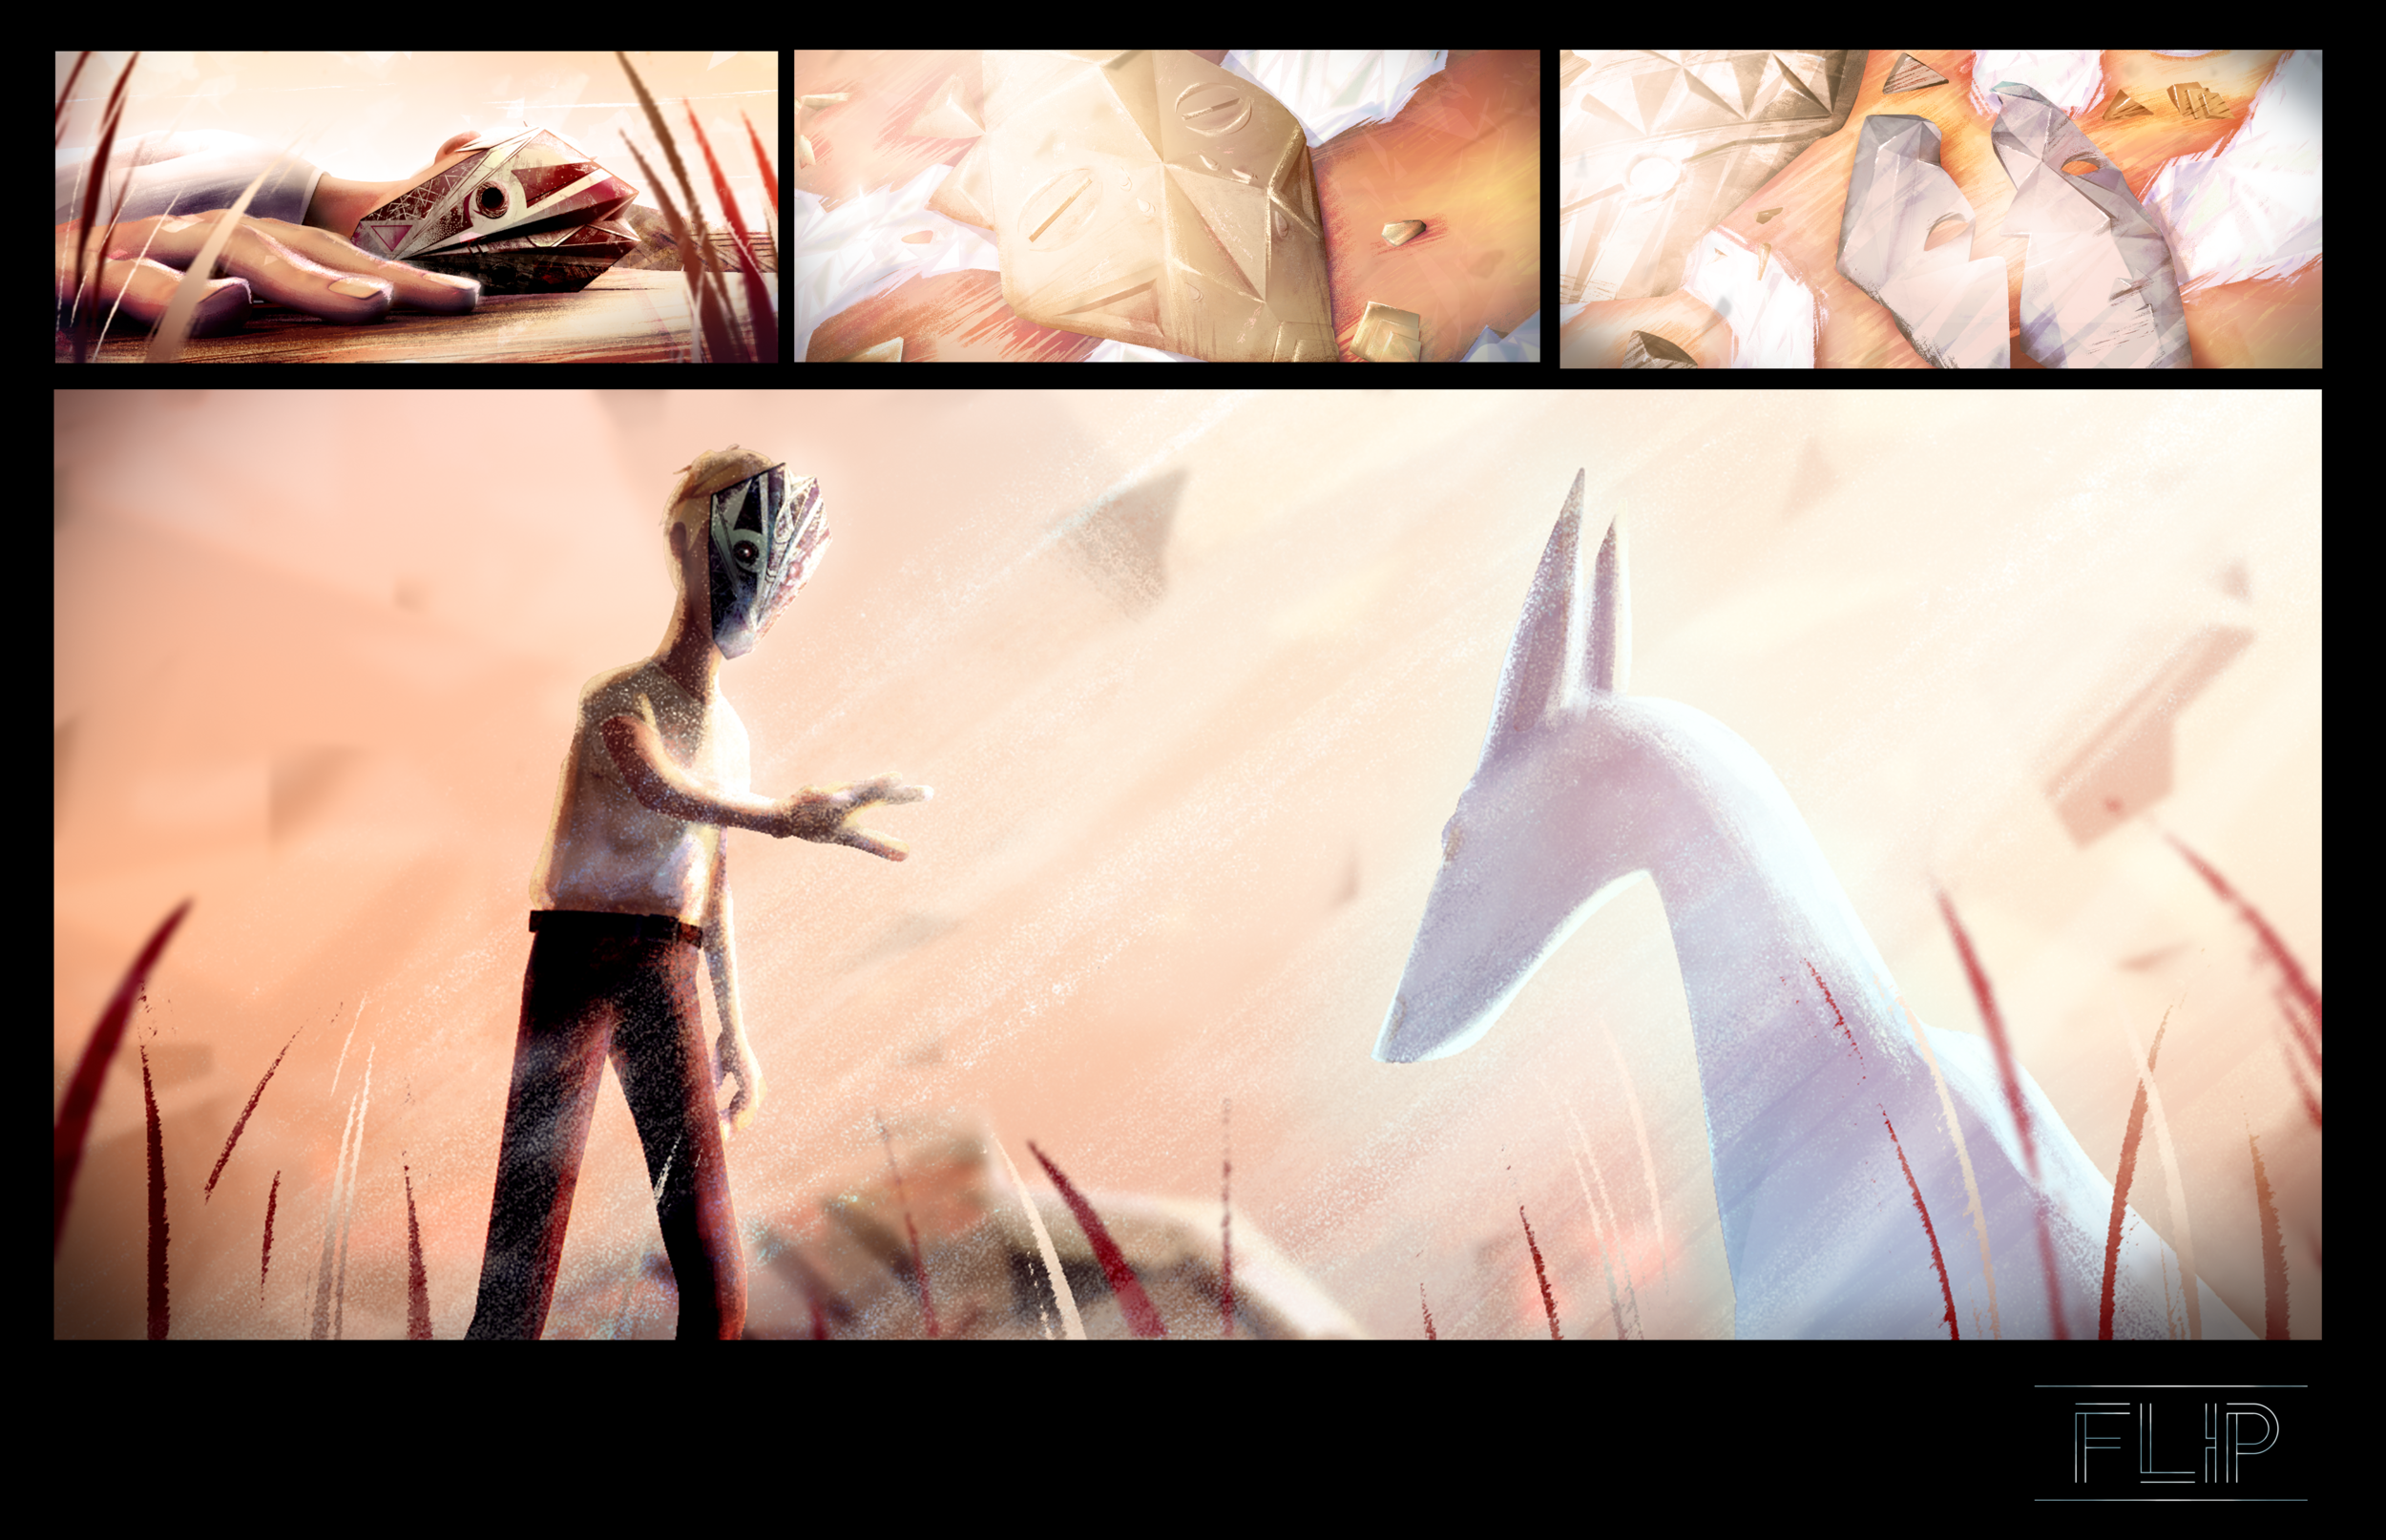 planche_sequence_marecage02.png